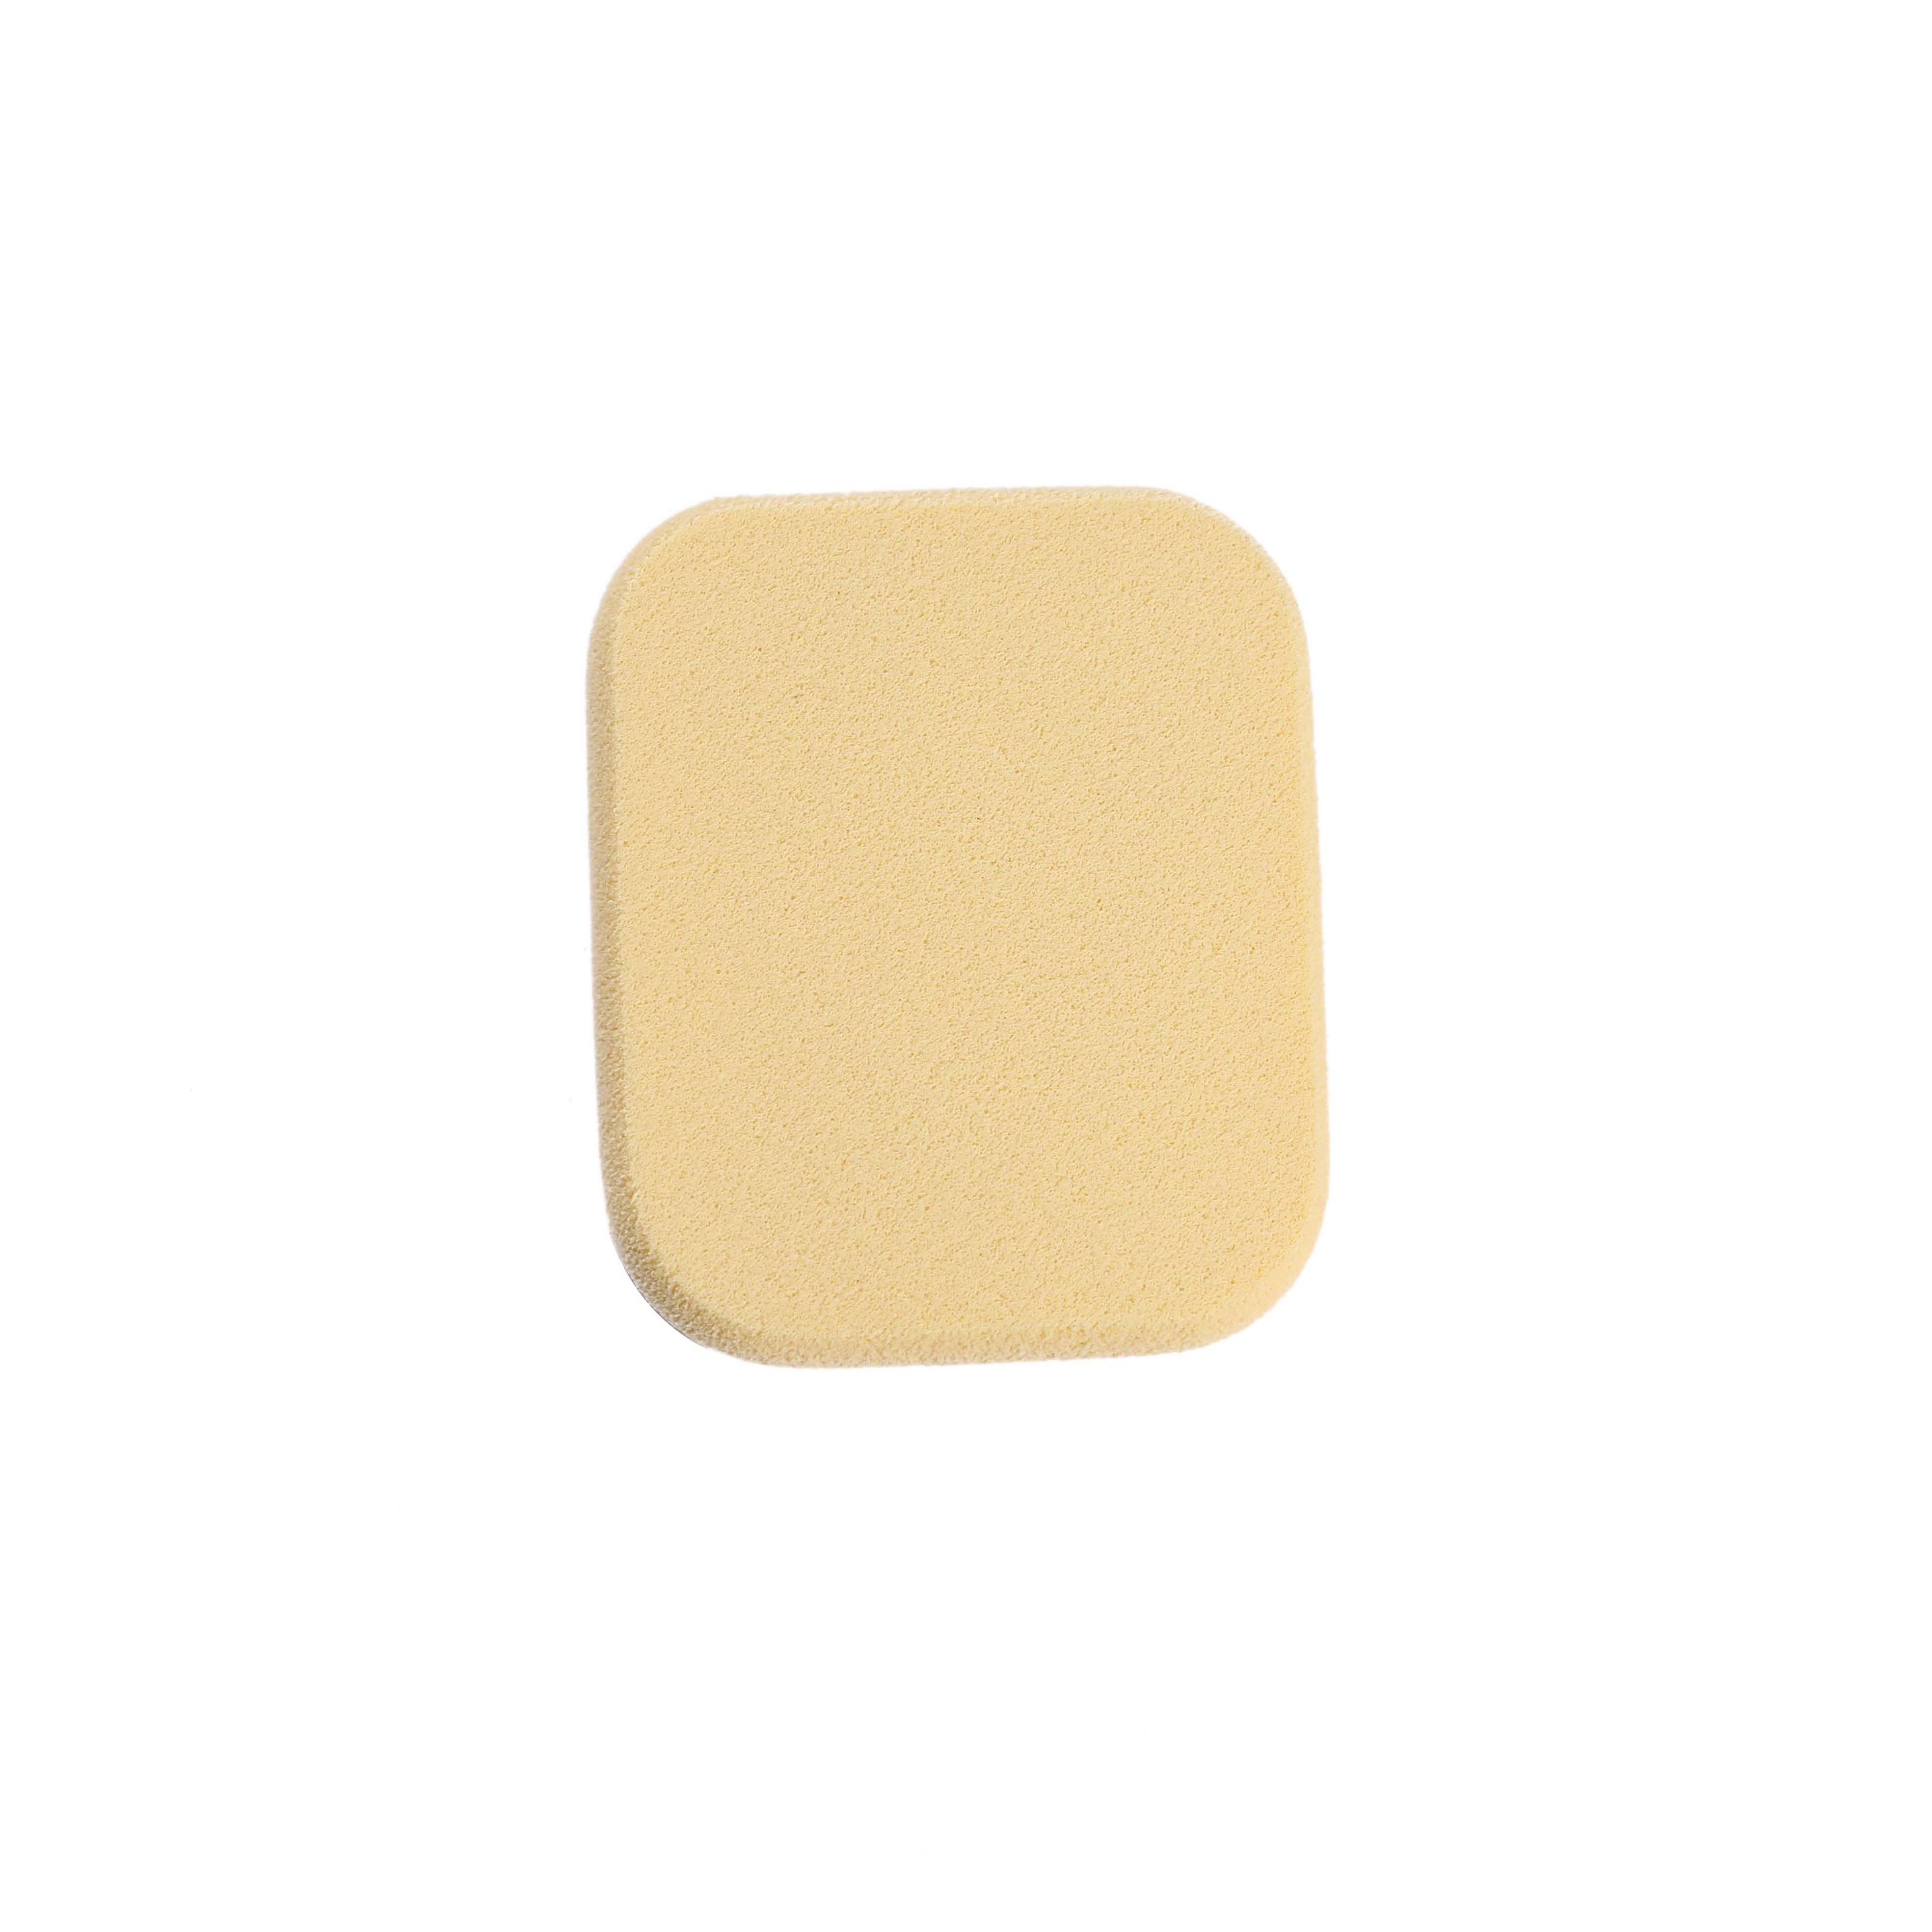 Square With Grinding Edge Shaped Makeup Sponge